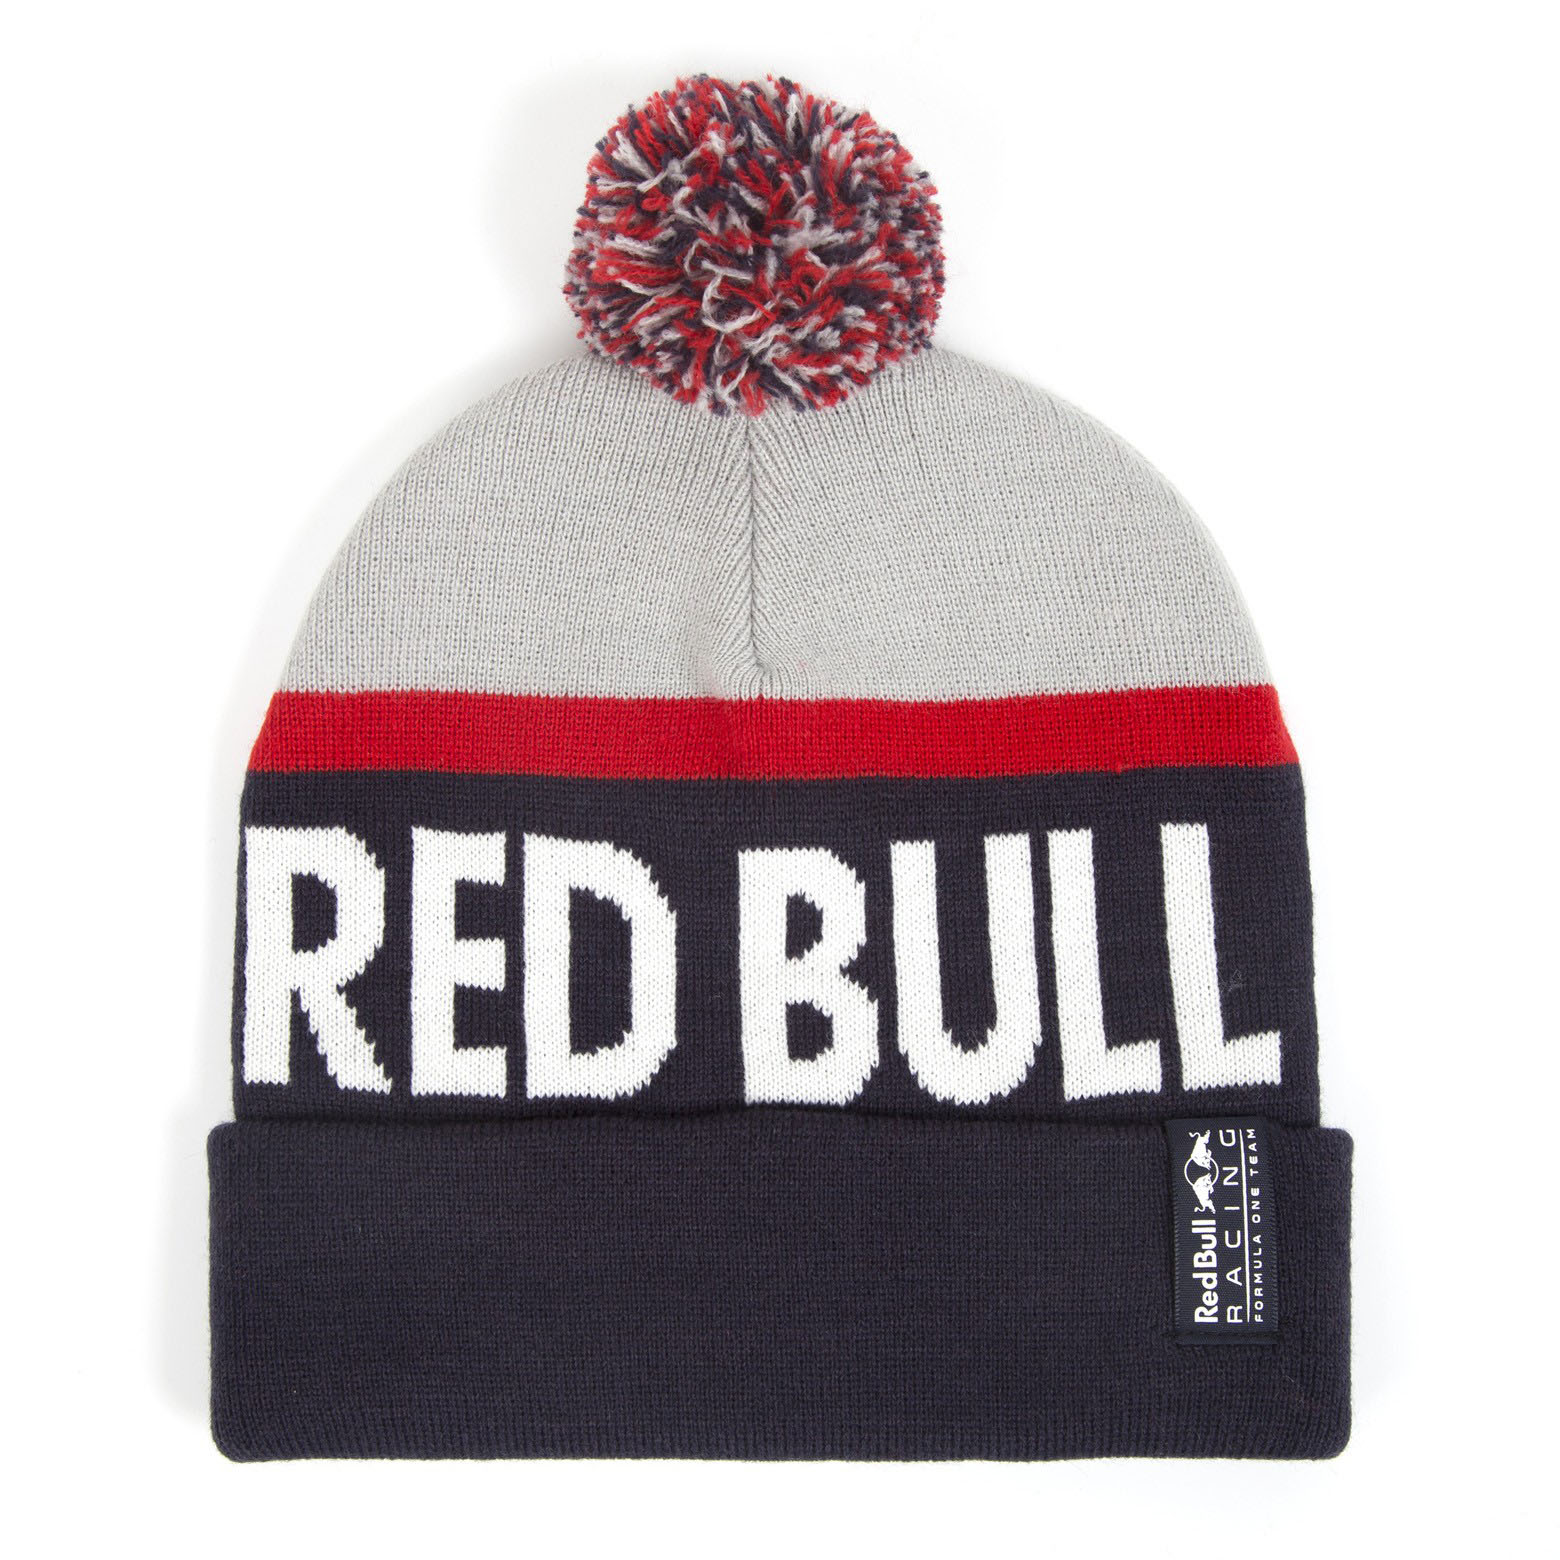 Sentinel 2018 Aston Martin Red Bull Racing F1 Team Beanie Knitted Winter Hat  Adult Size 50a2a8b7fe71